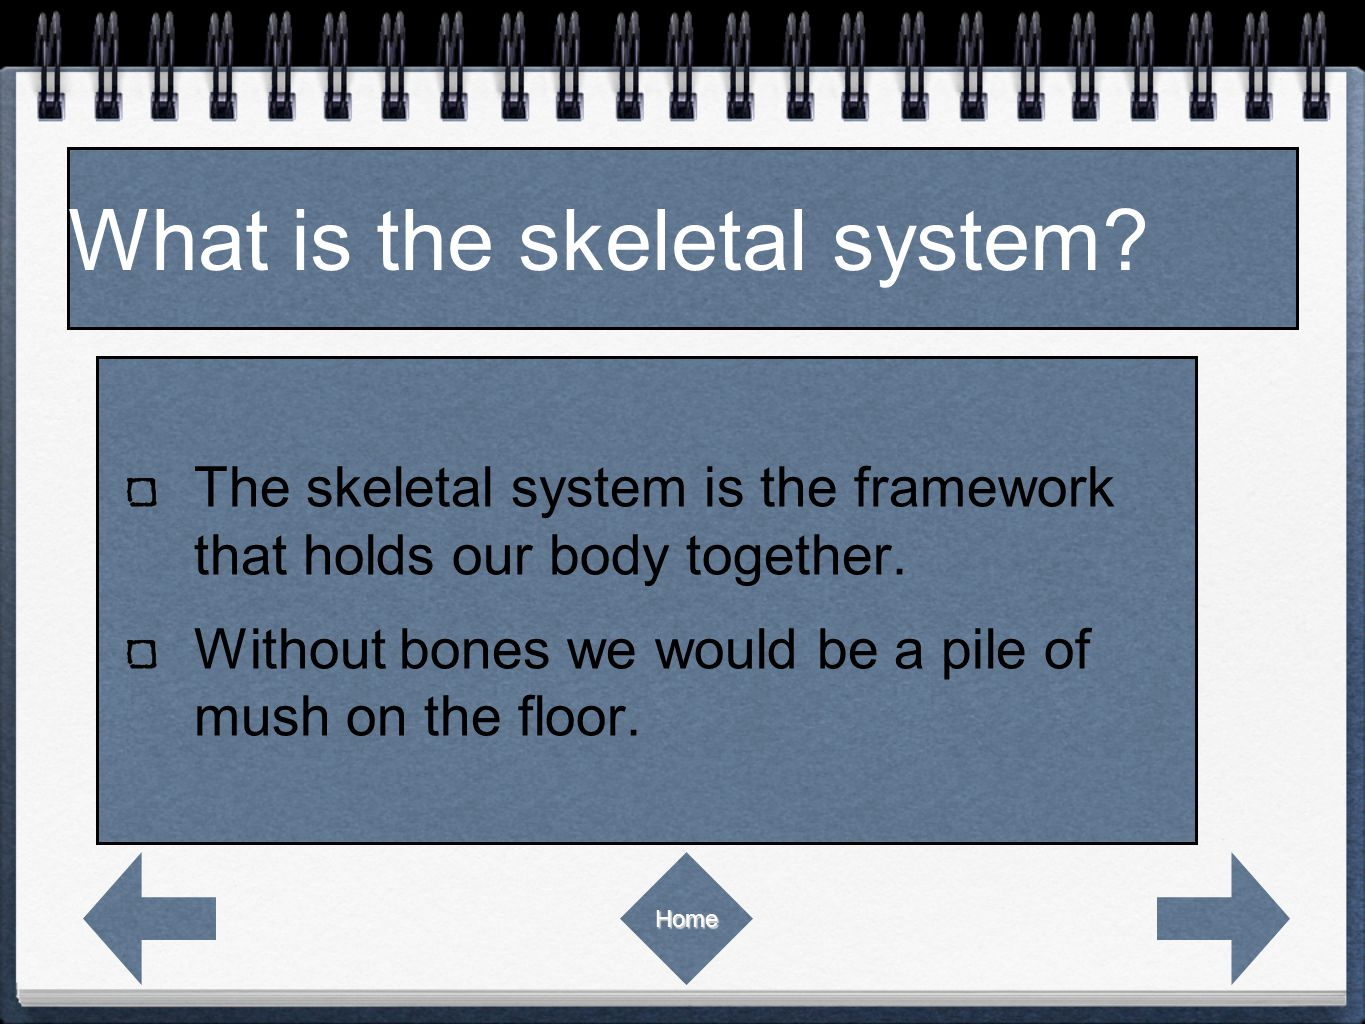 The skeletal system is the framework that holds our body together.